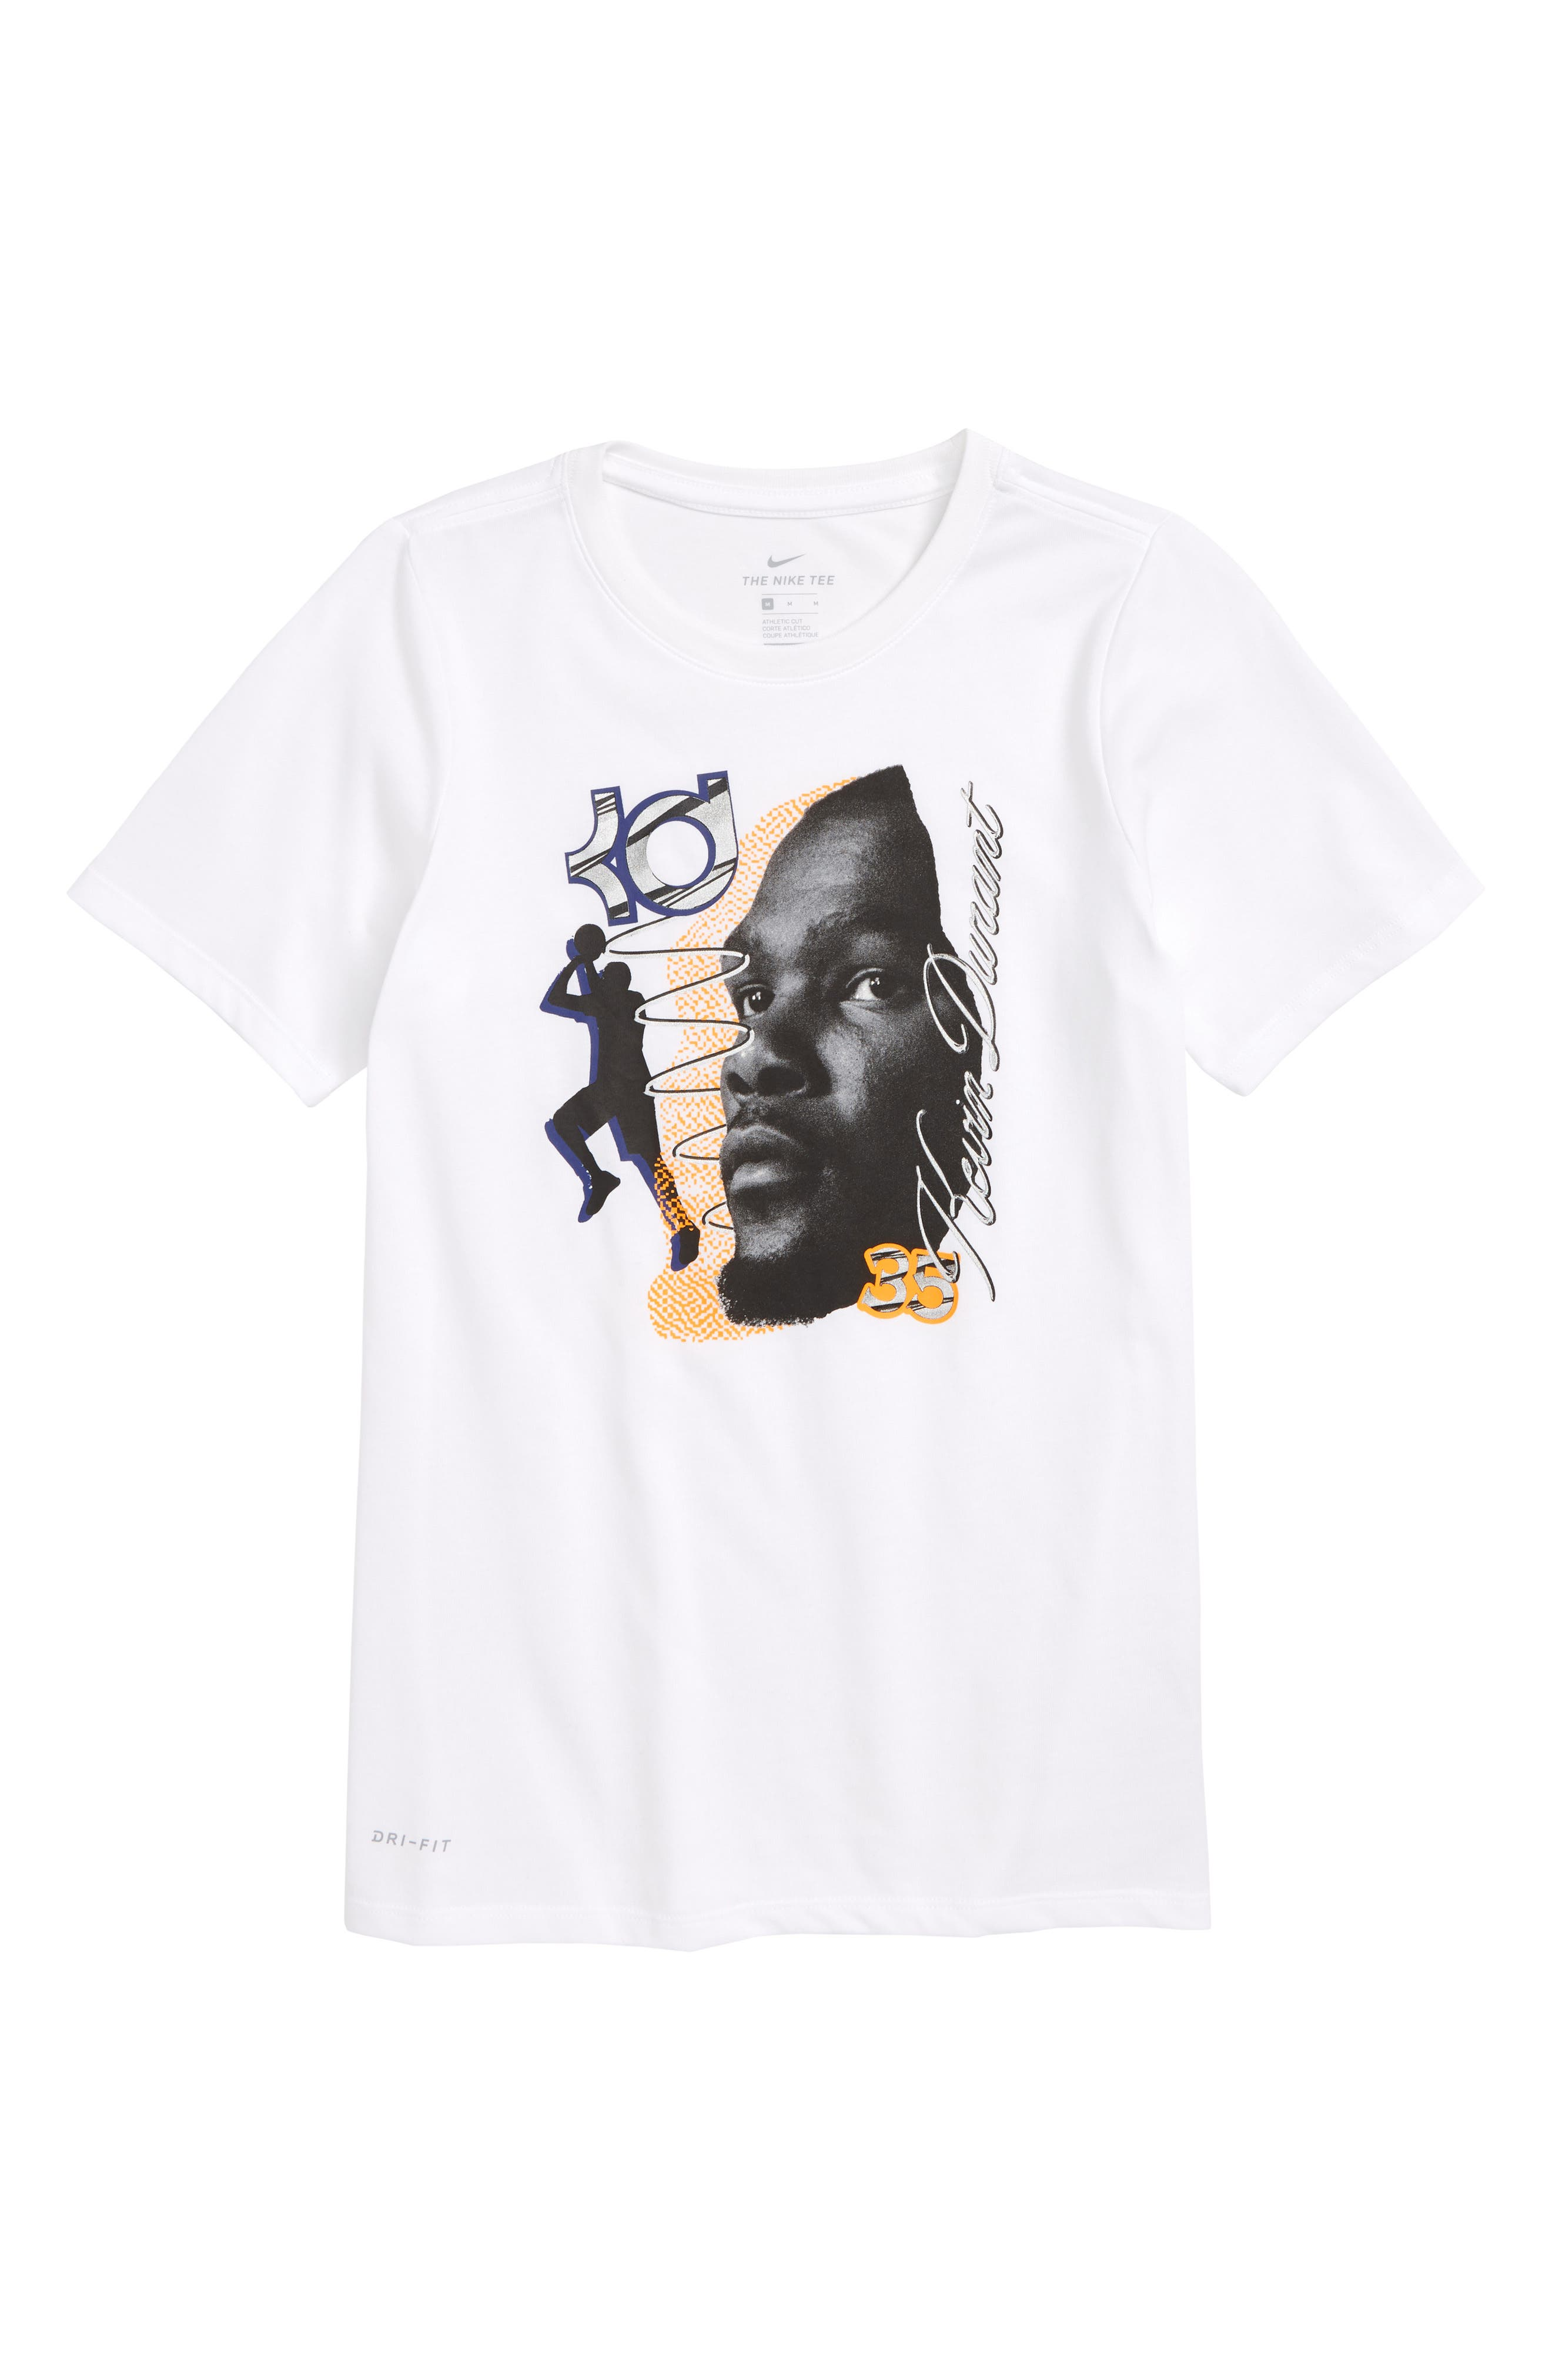 KD Dry T-Shirt,                         Main,                         color, White